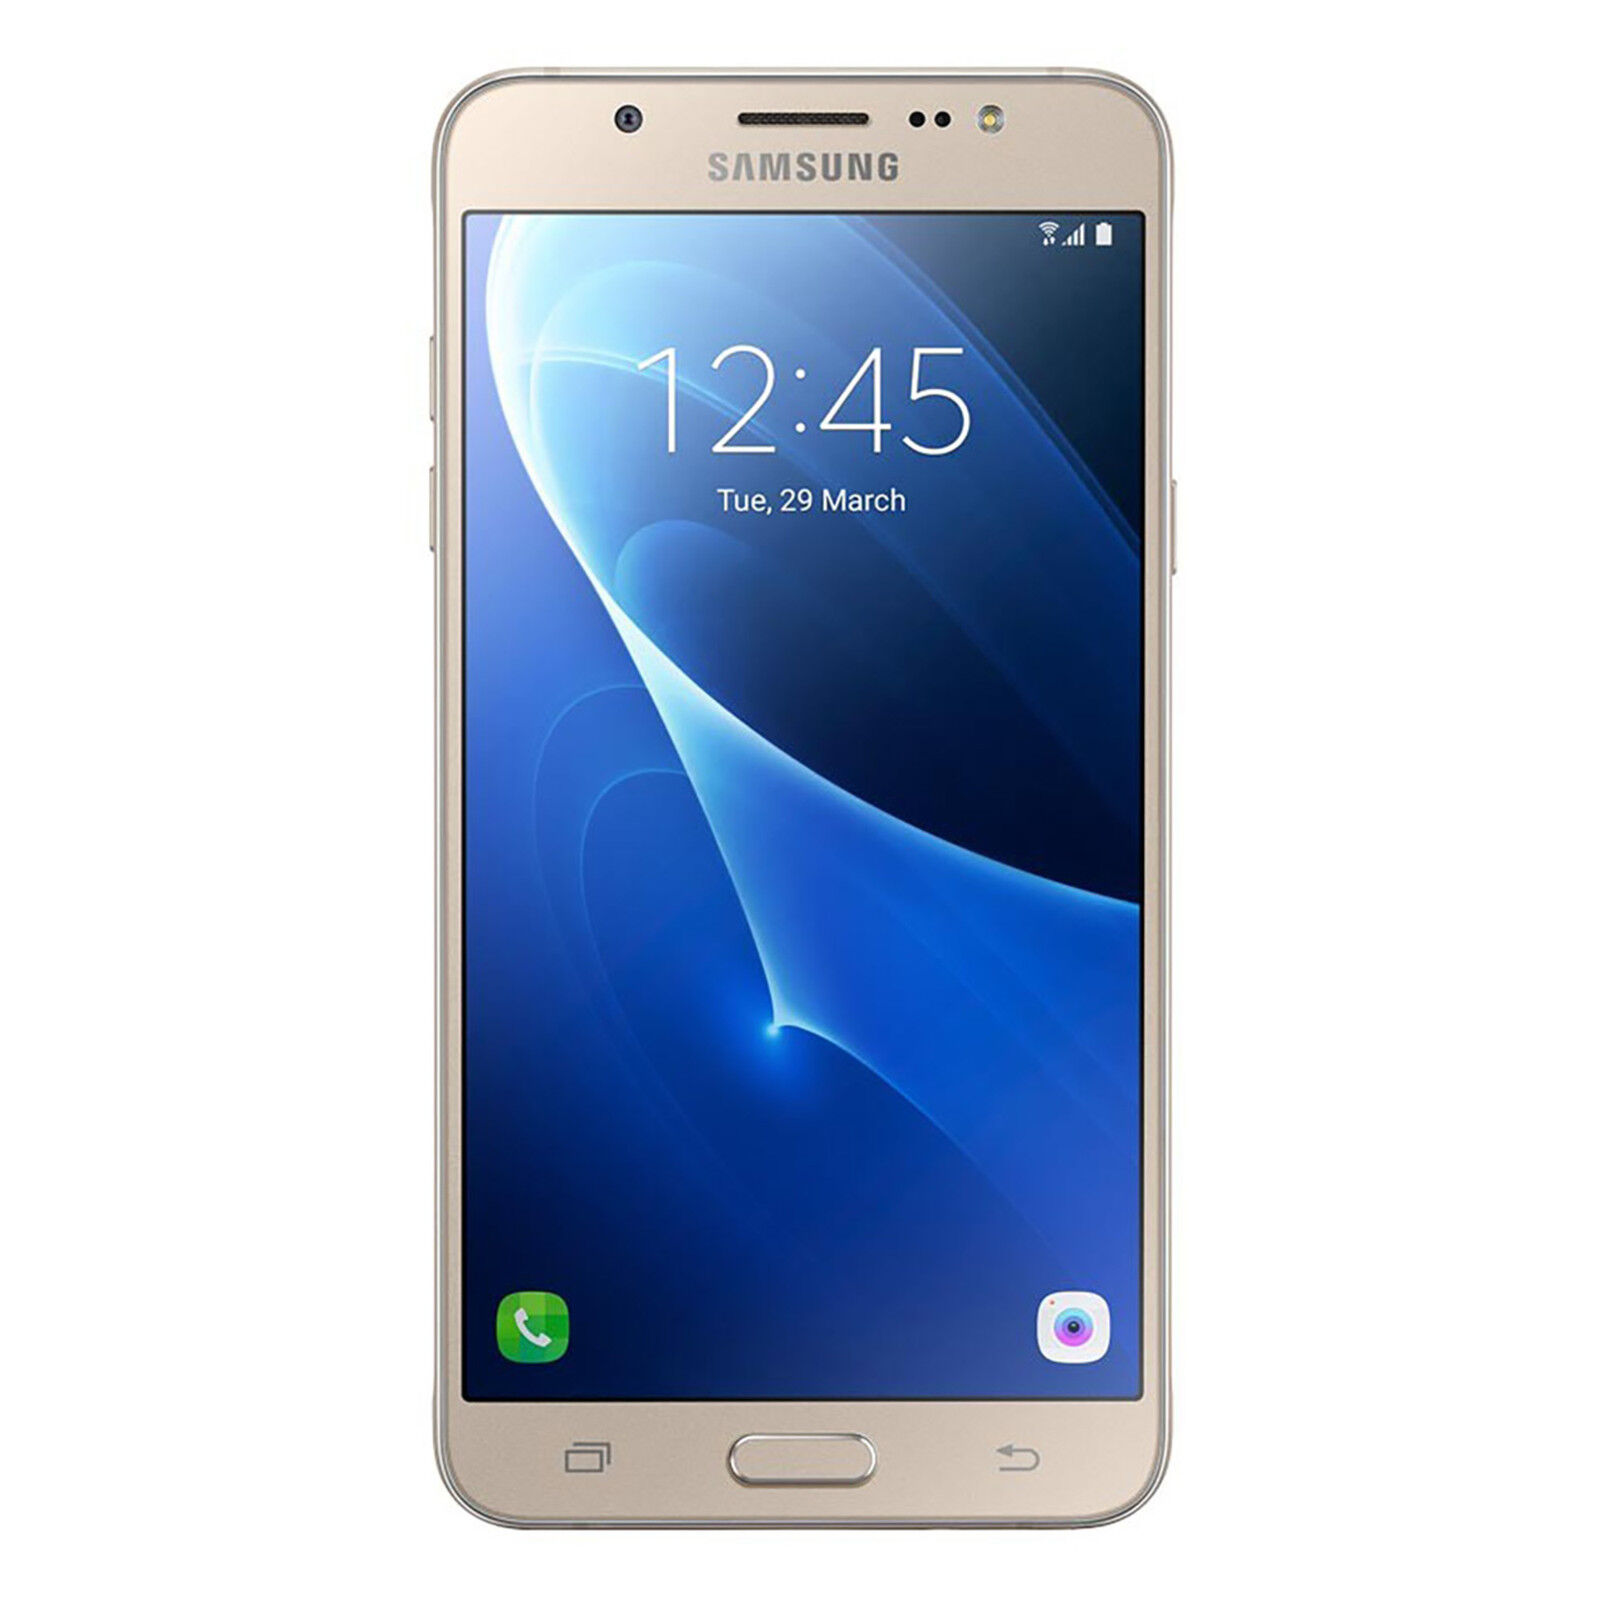 samsung galaxy j7 j710m unlocked gsm dual sim android smartphone gold 8806088530116 ebay. Black Bedroom Furniture Sets. Home Design Ideas